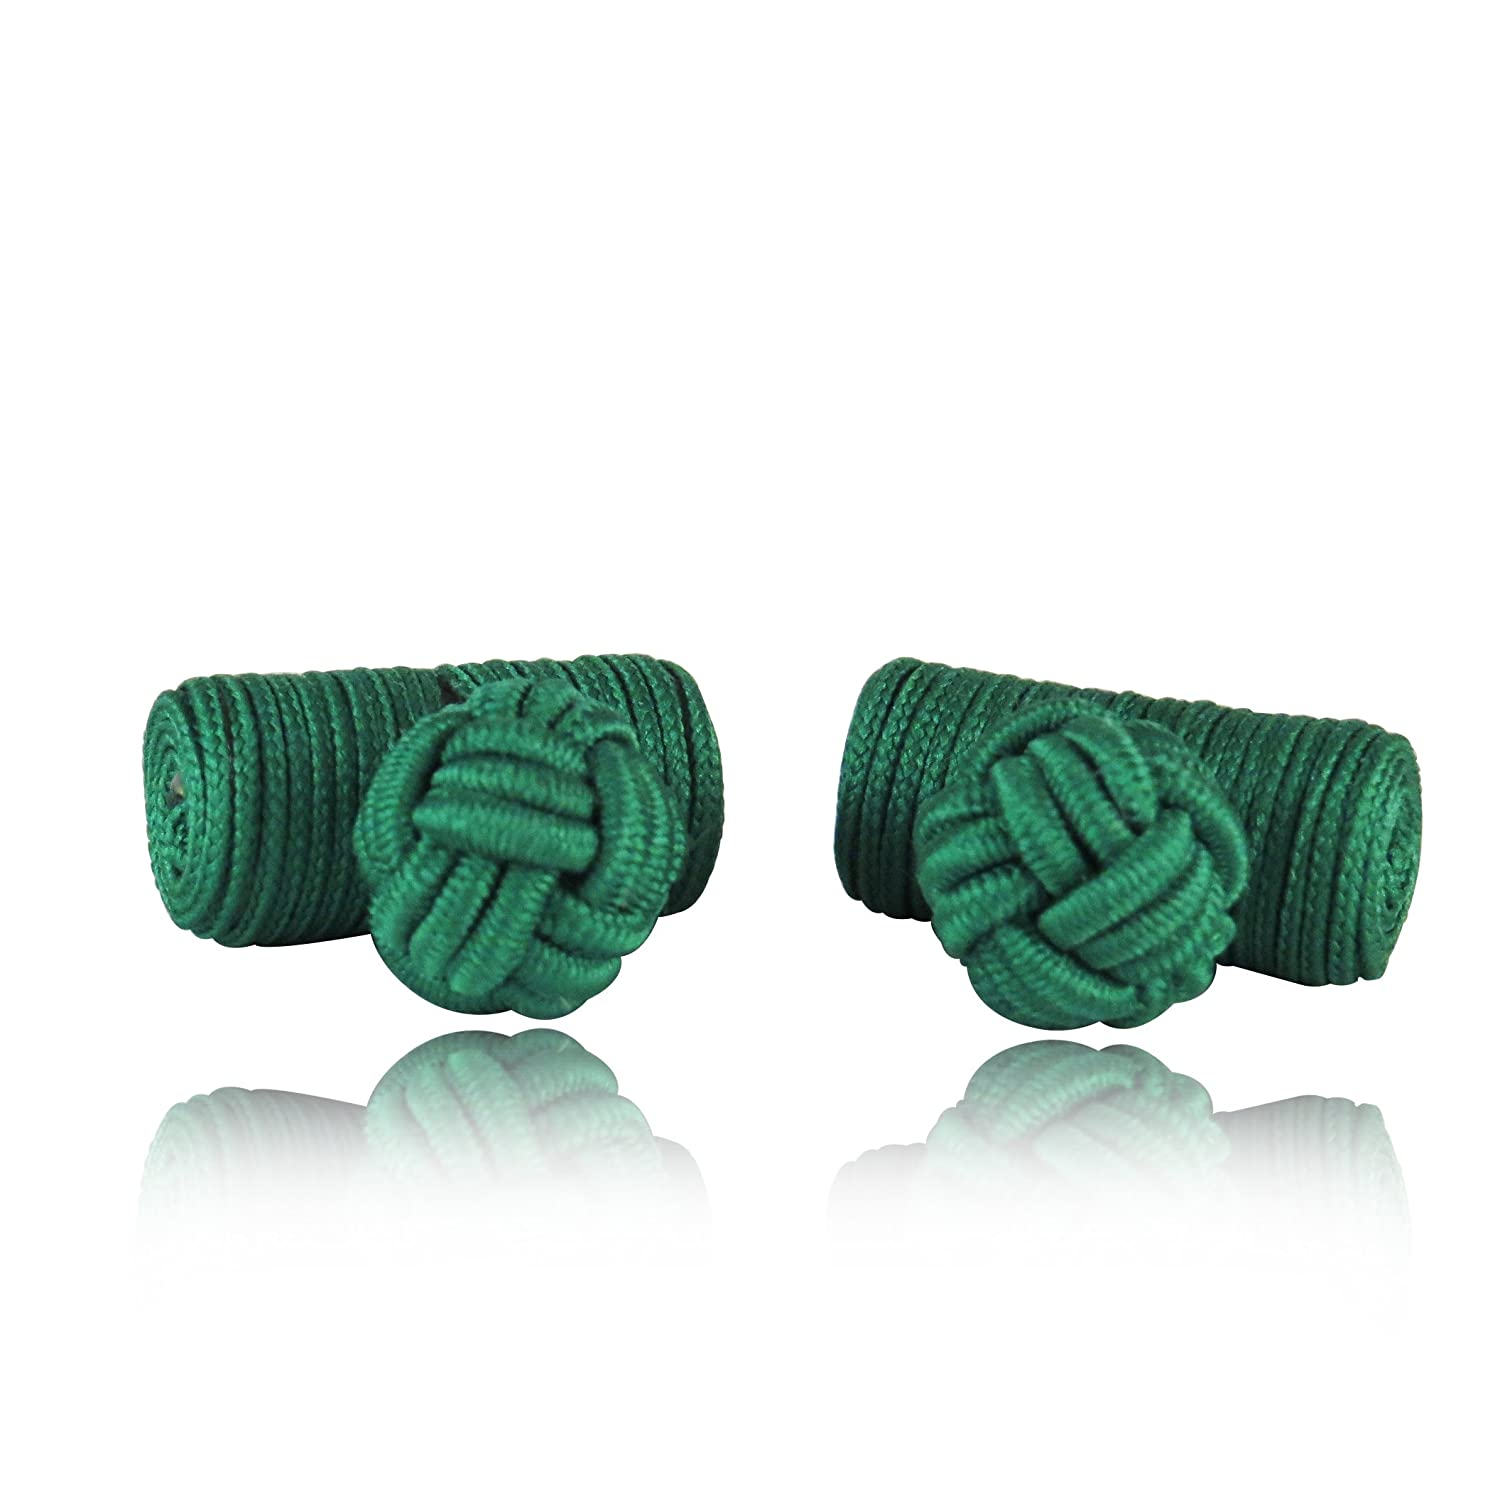 Classic Kelly Green Log Style Knot Cuff Links With Velour Pouch by Cuff-Daddy